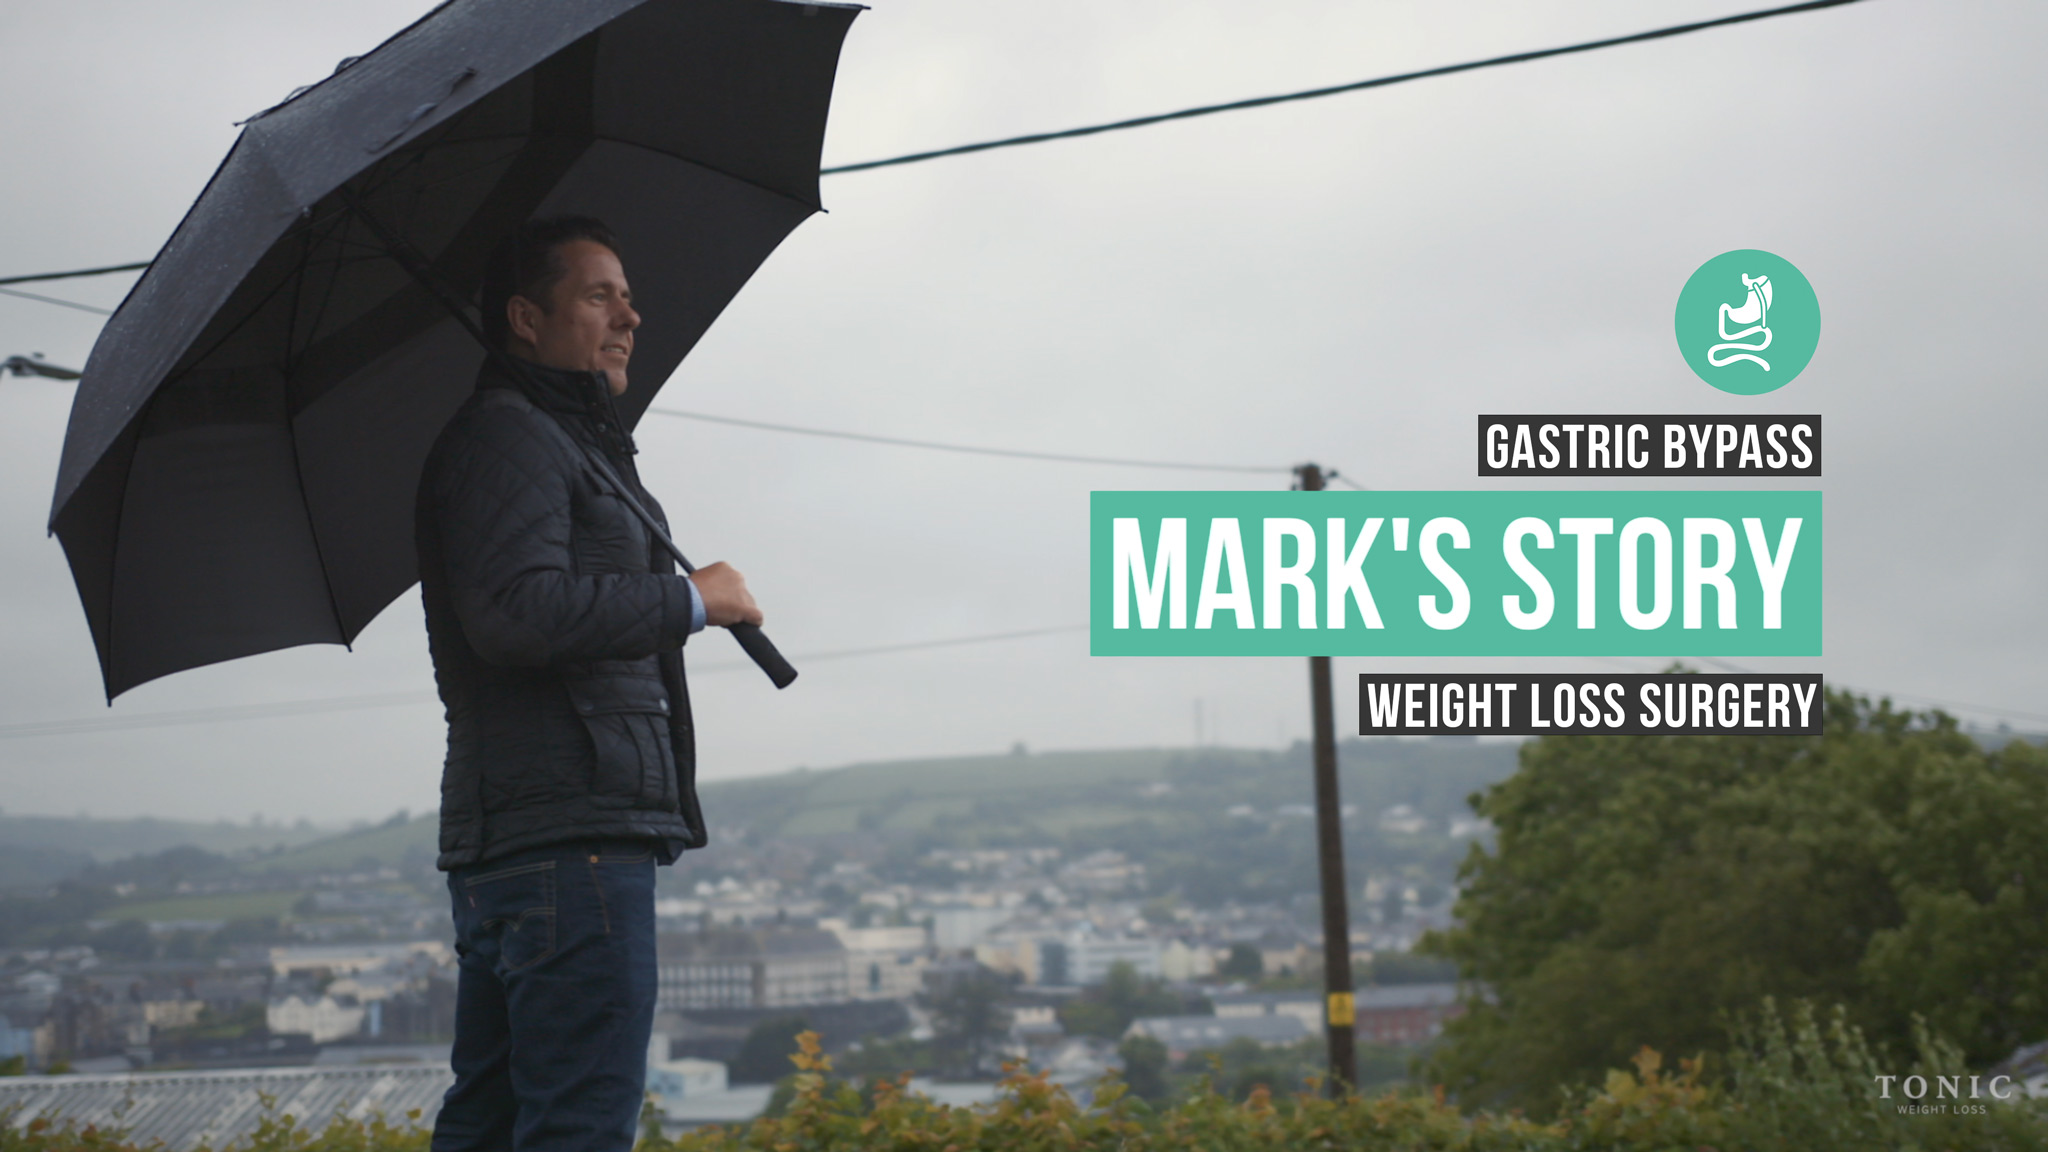 Tonic-Weight-Loss-Surgery-Gastric-Bypass--Mark's-Story